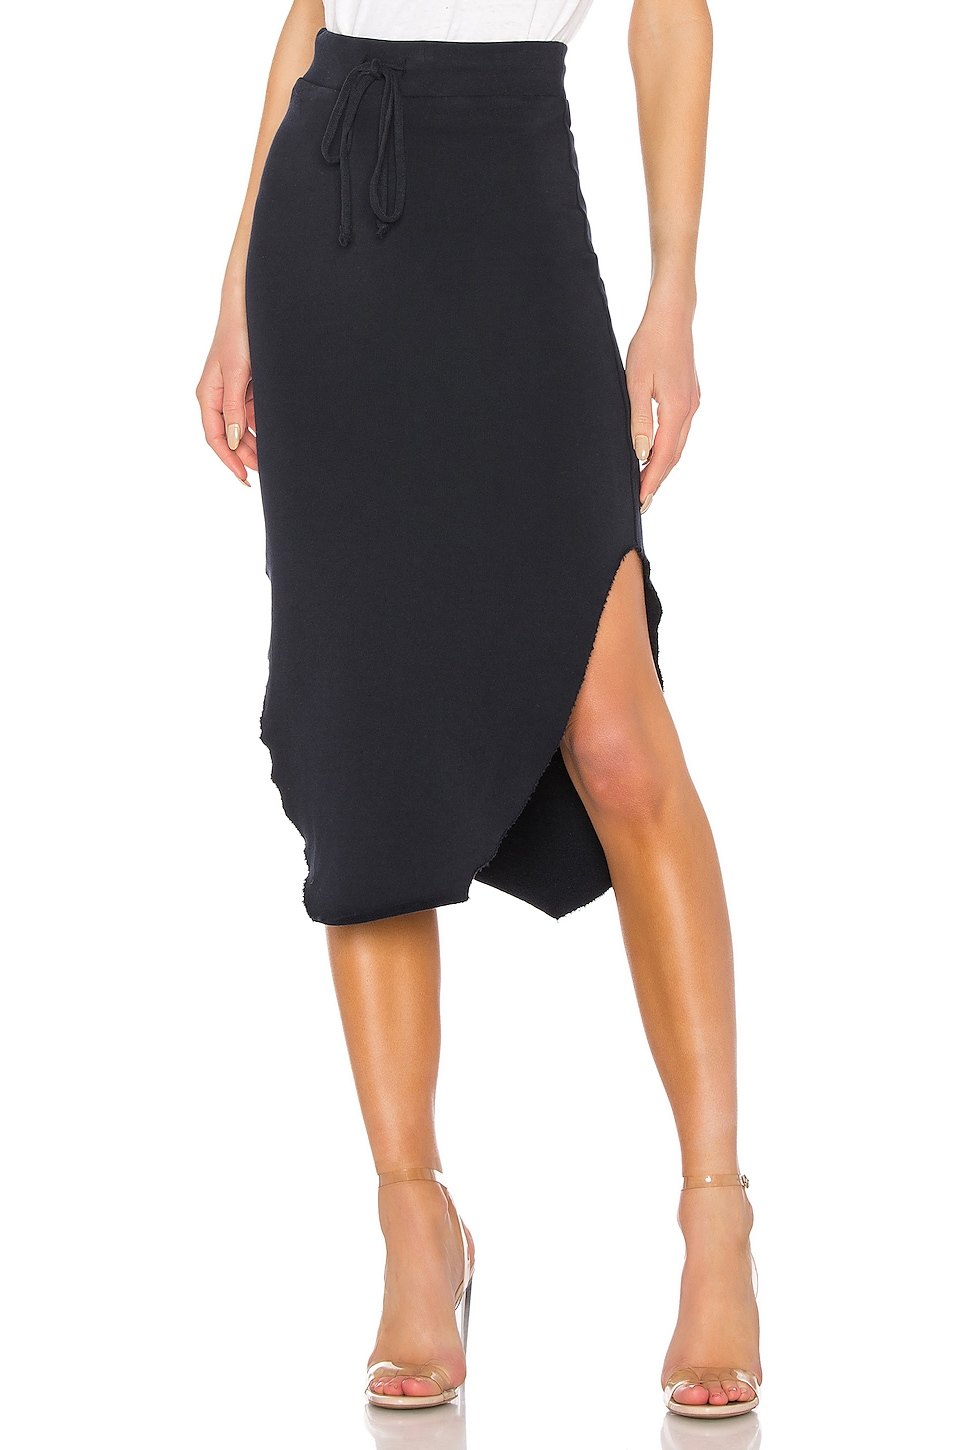 Frank & Eileen Tee Lab Long Fleece Skirt in British Royal Navy